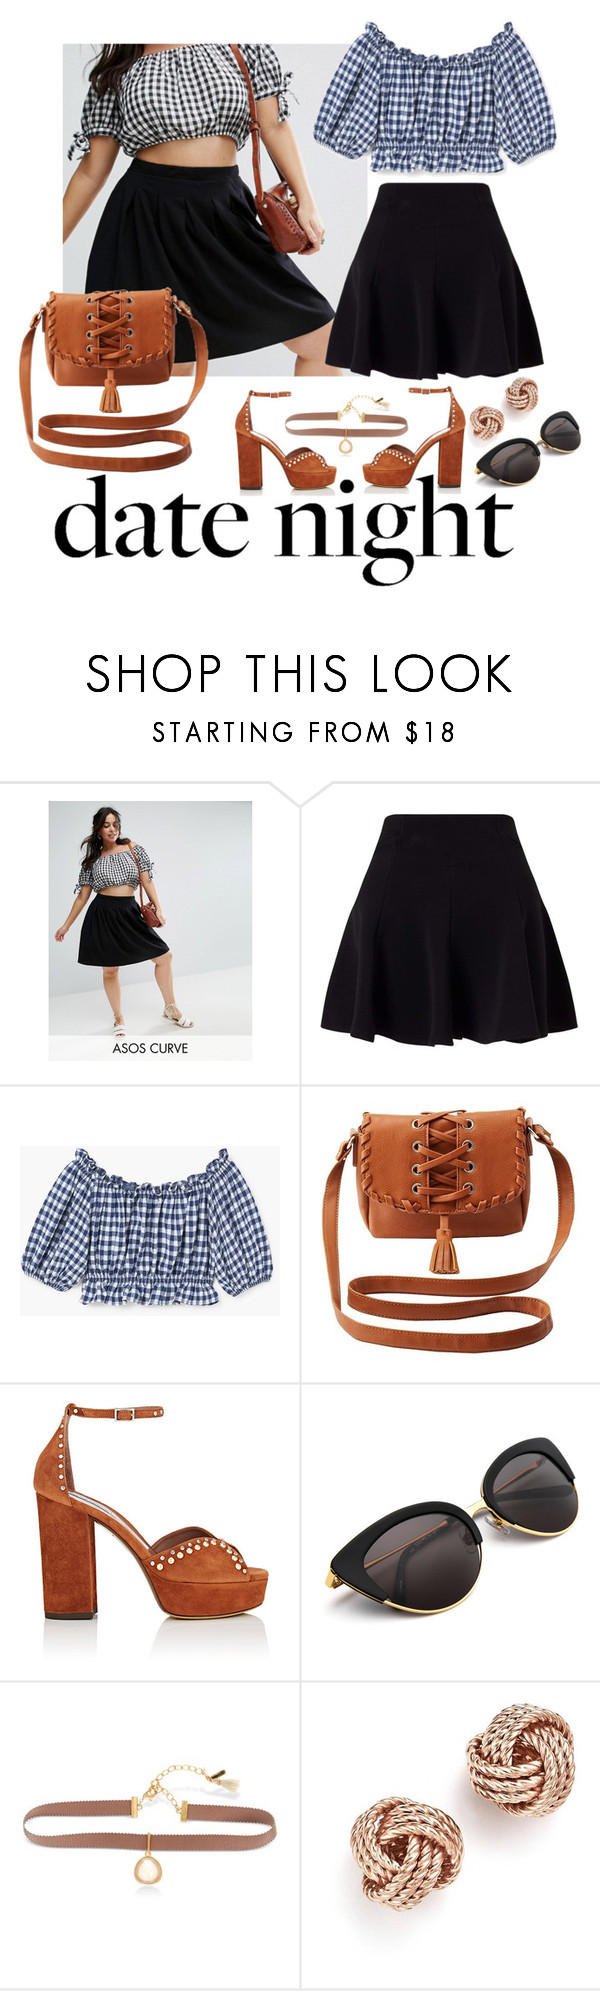 """Smokin' Hot: Summer Date Night"" by thebigtree ❤ liked on Polyvore featuring ASOS Curve, Miss Selfridge, MANGO, Charlotte Russe, Tabitha Simmons, Lonna & Lilly, Bloomingdale's and summerdatenight"